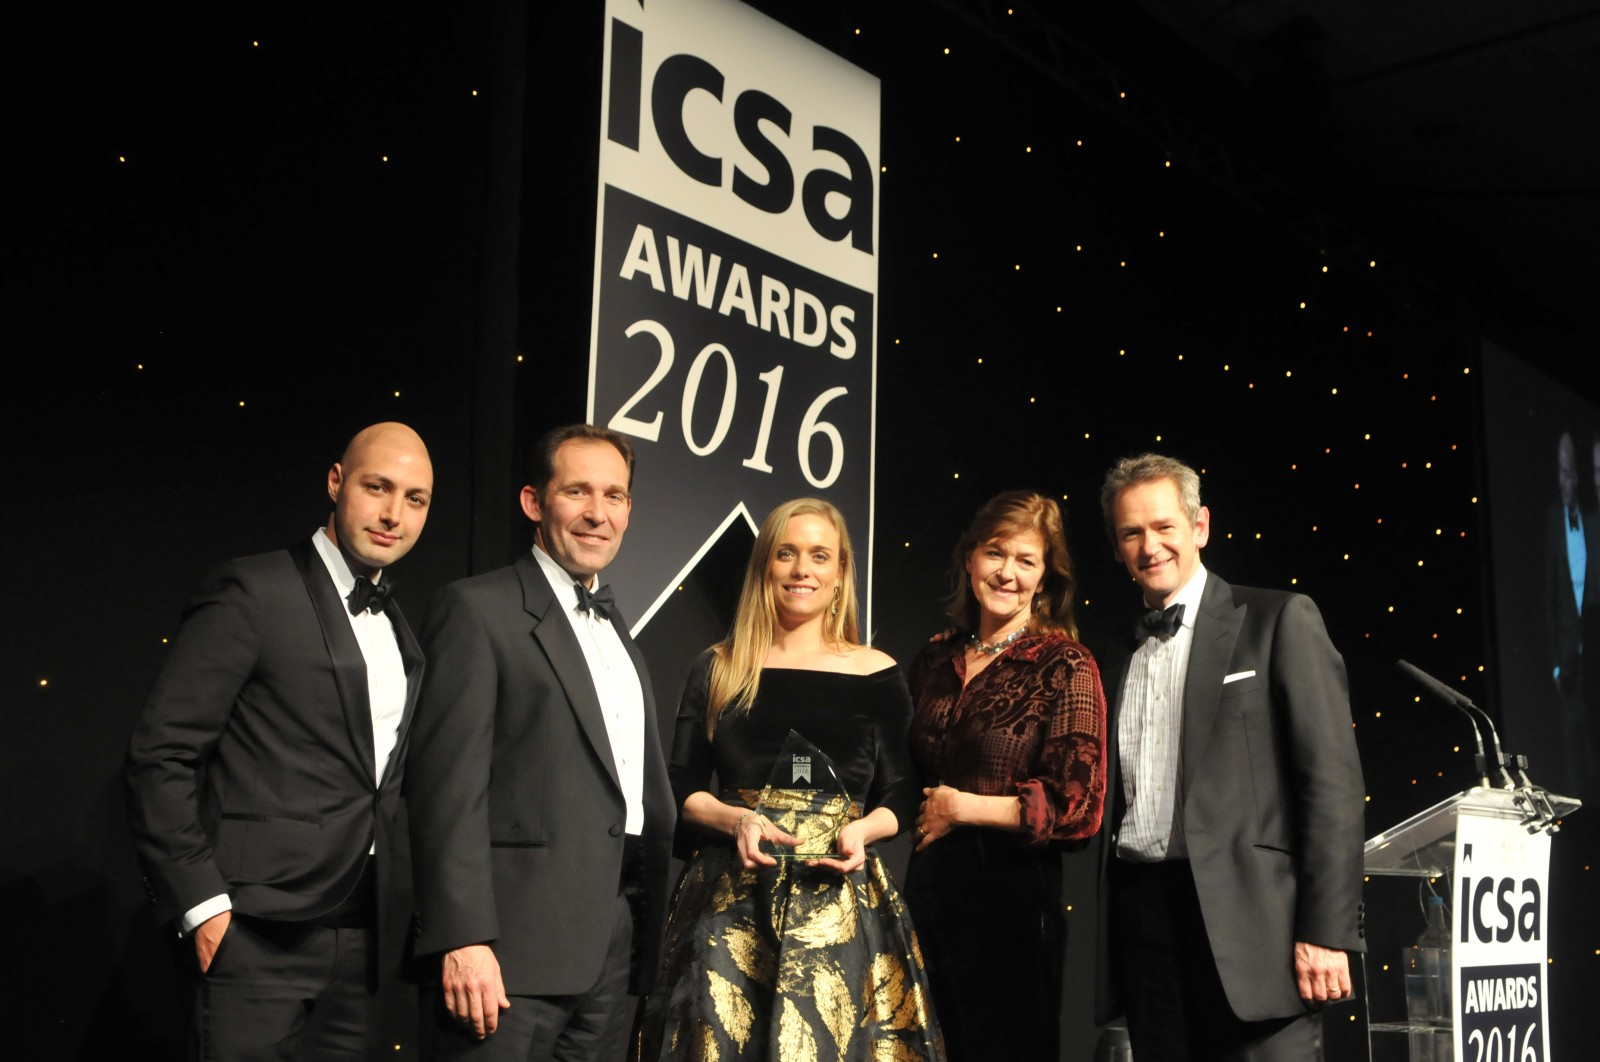 ICSA Awards - Governance Project of the Year